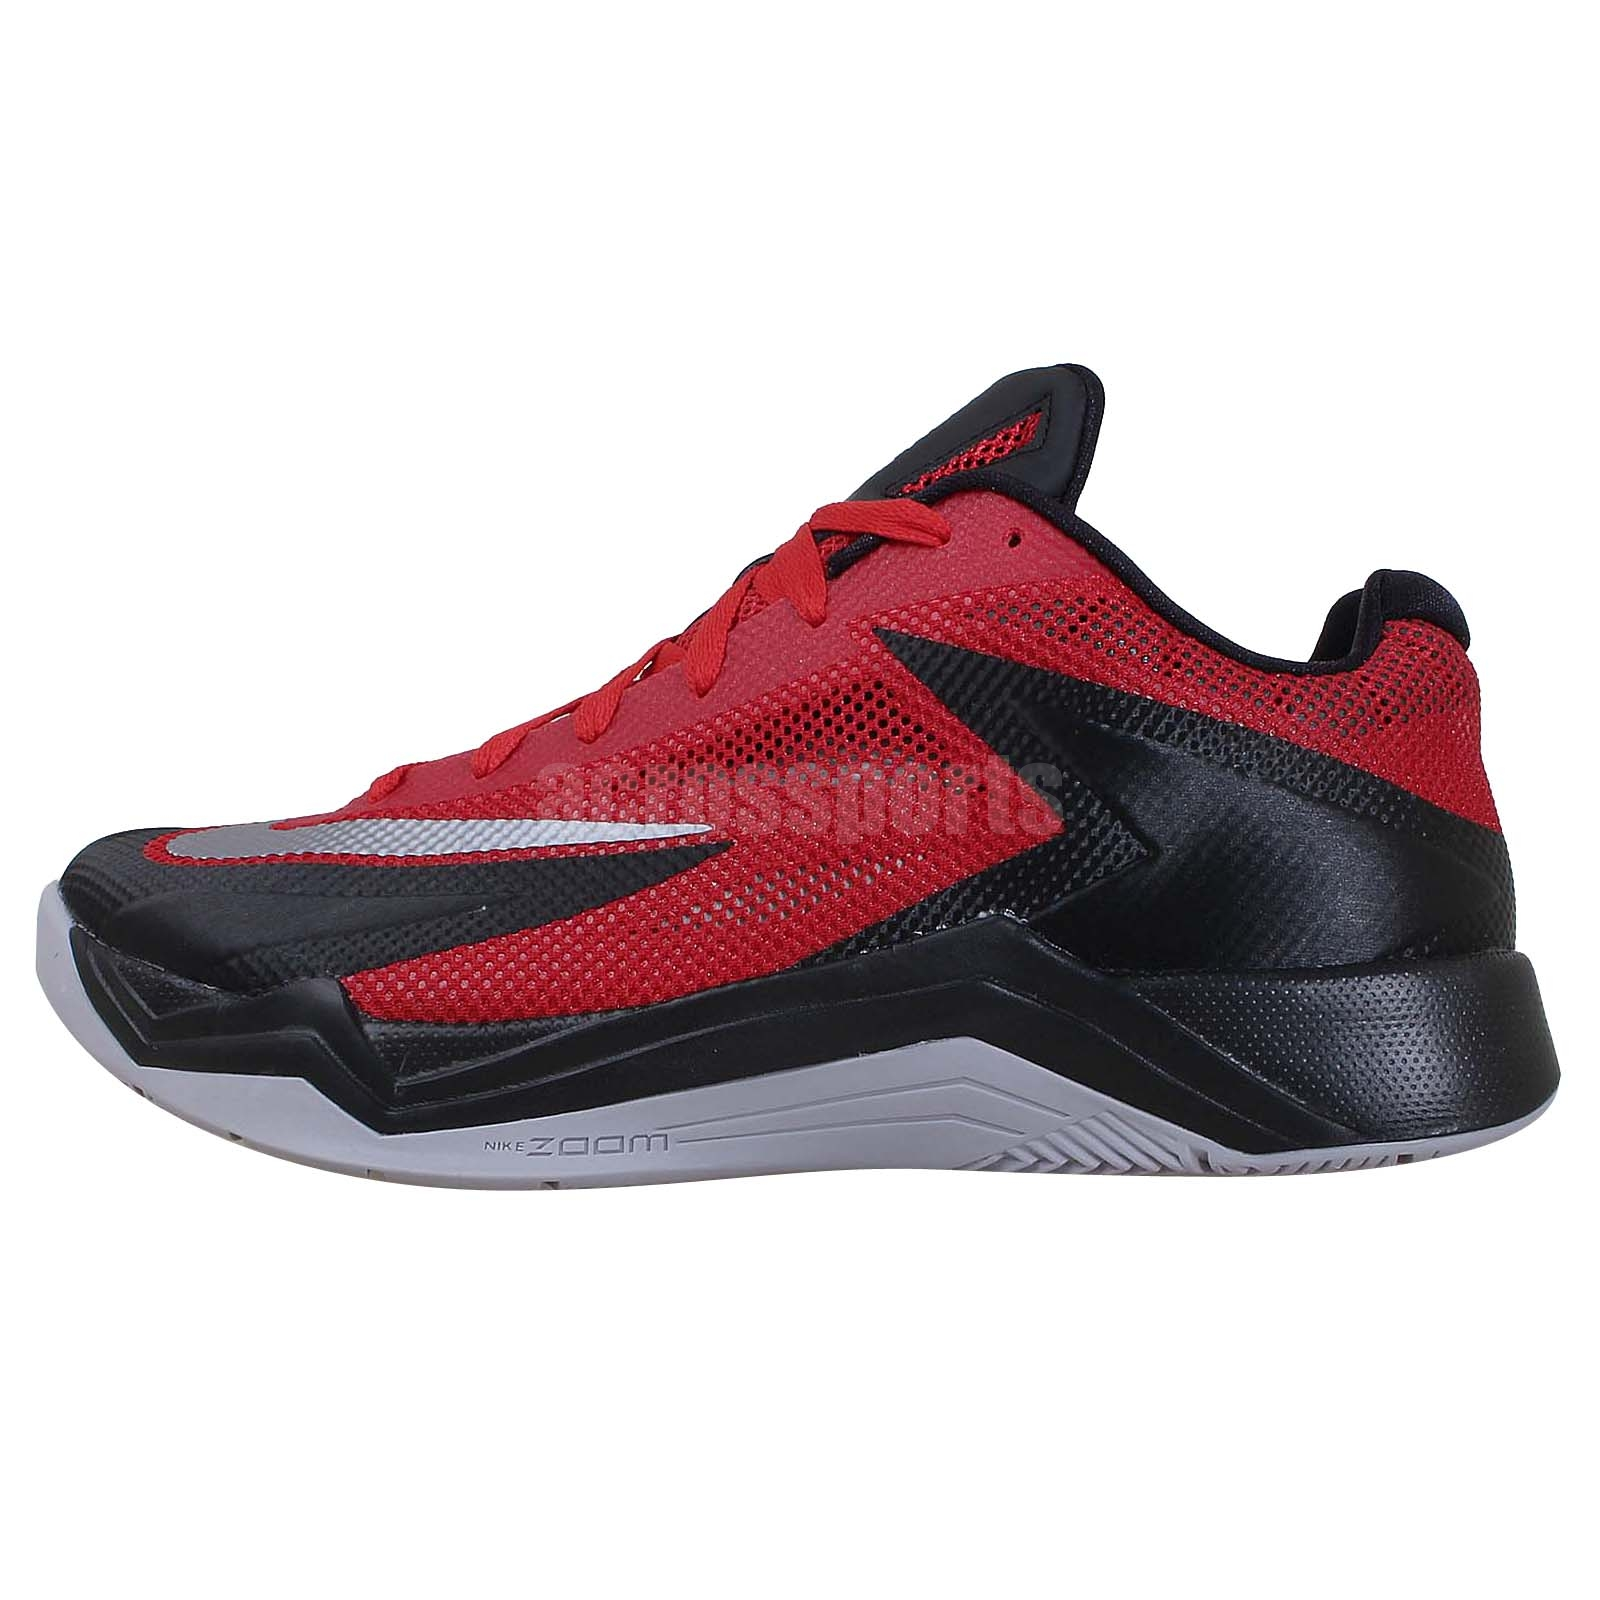 nike zoom fire xdr black red grey 2014 new mens basketball